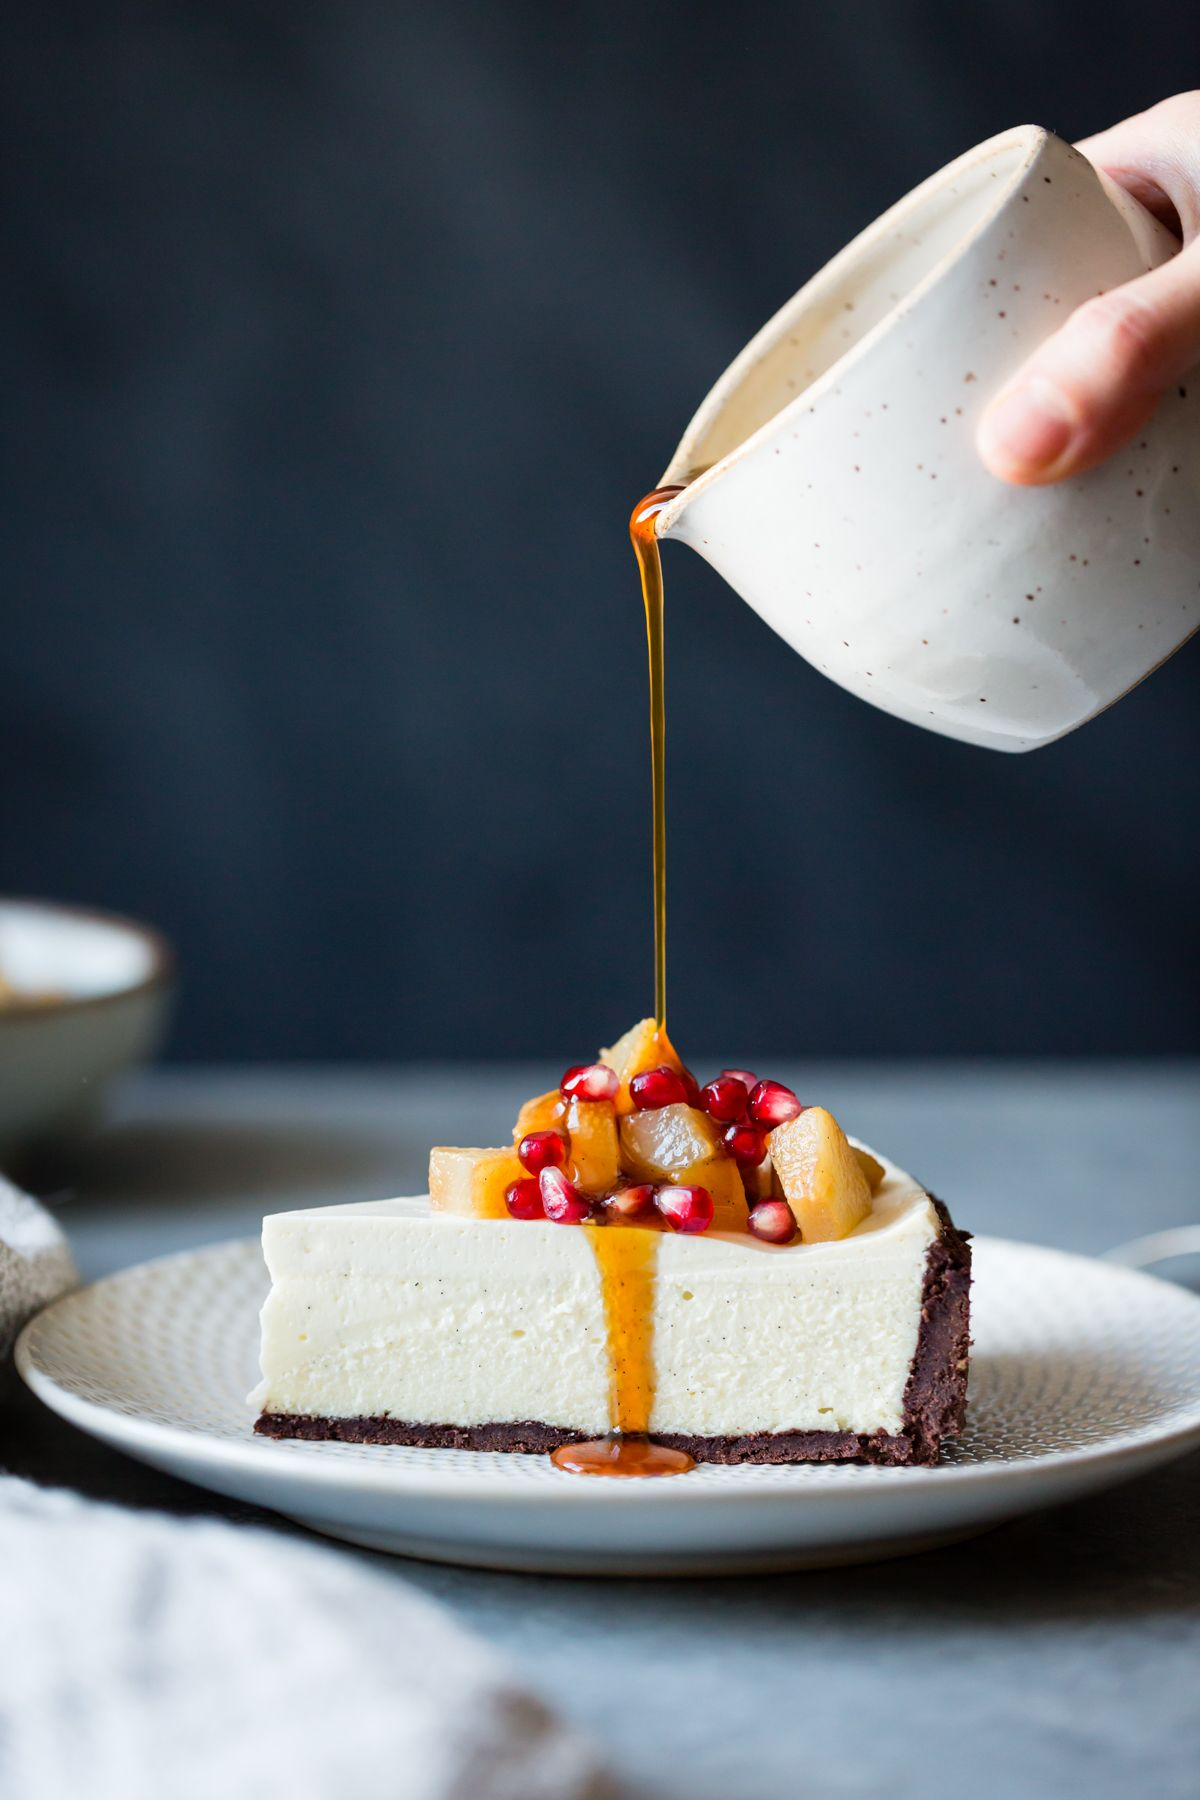 Chocolate Crusted Chevre Cheesecake With Earl Grey Poached Pears